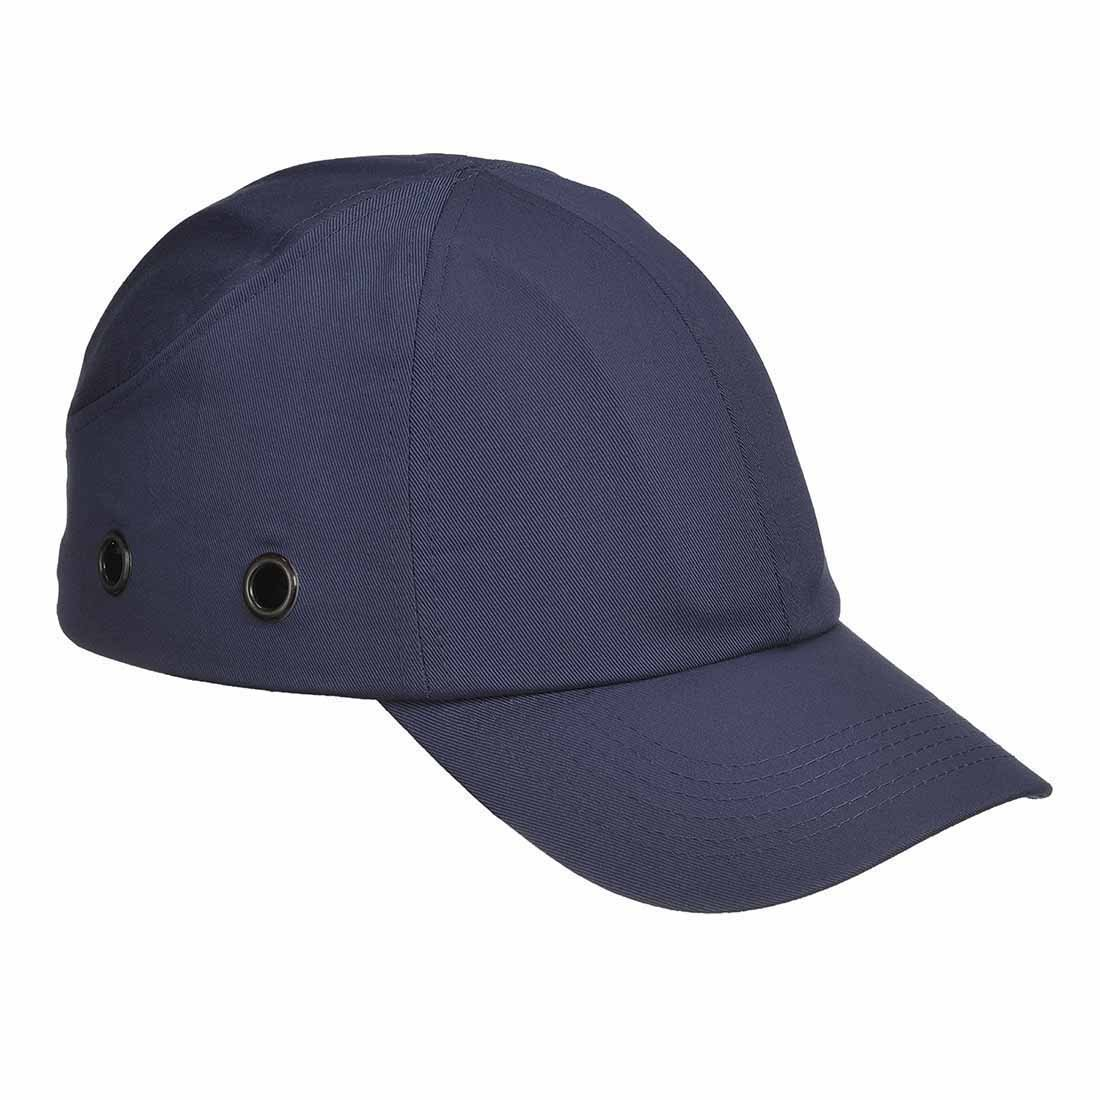 Black Spire Protective Vent Cool Safety Baseball Bump Cap Hard Hat